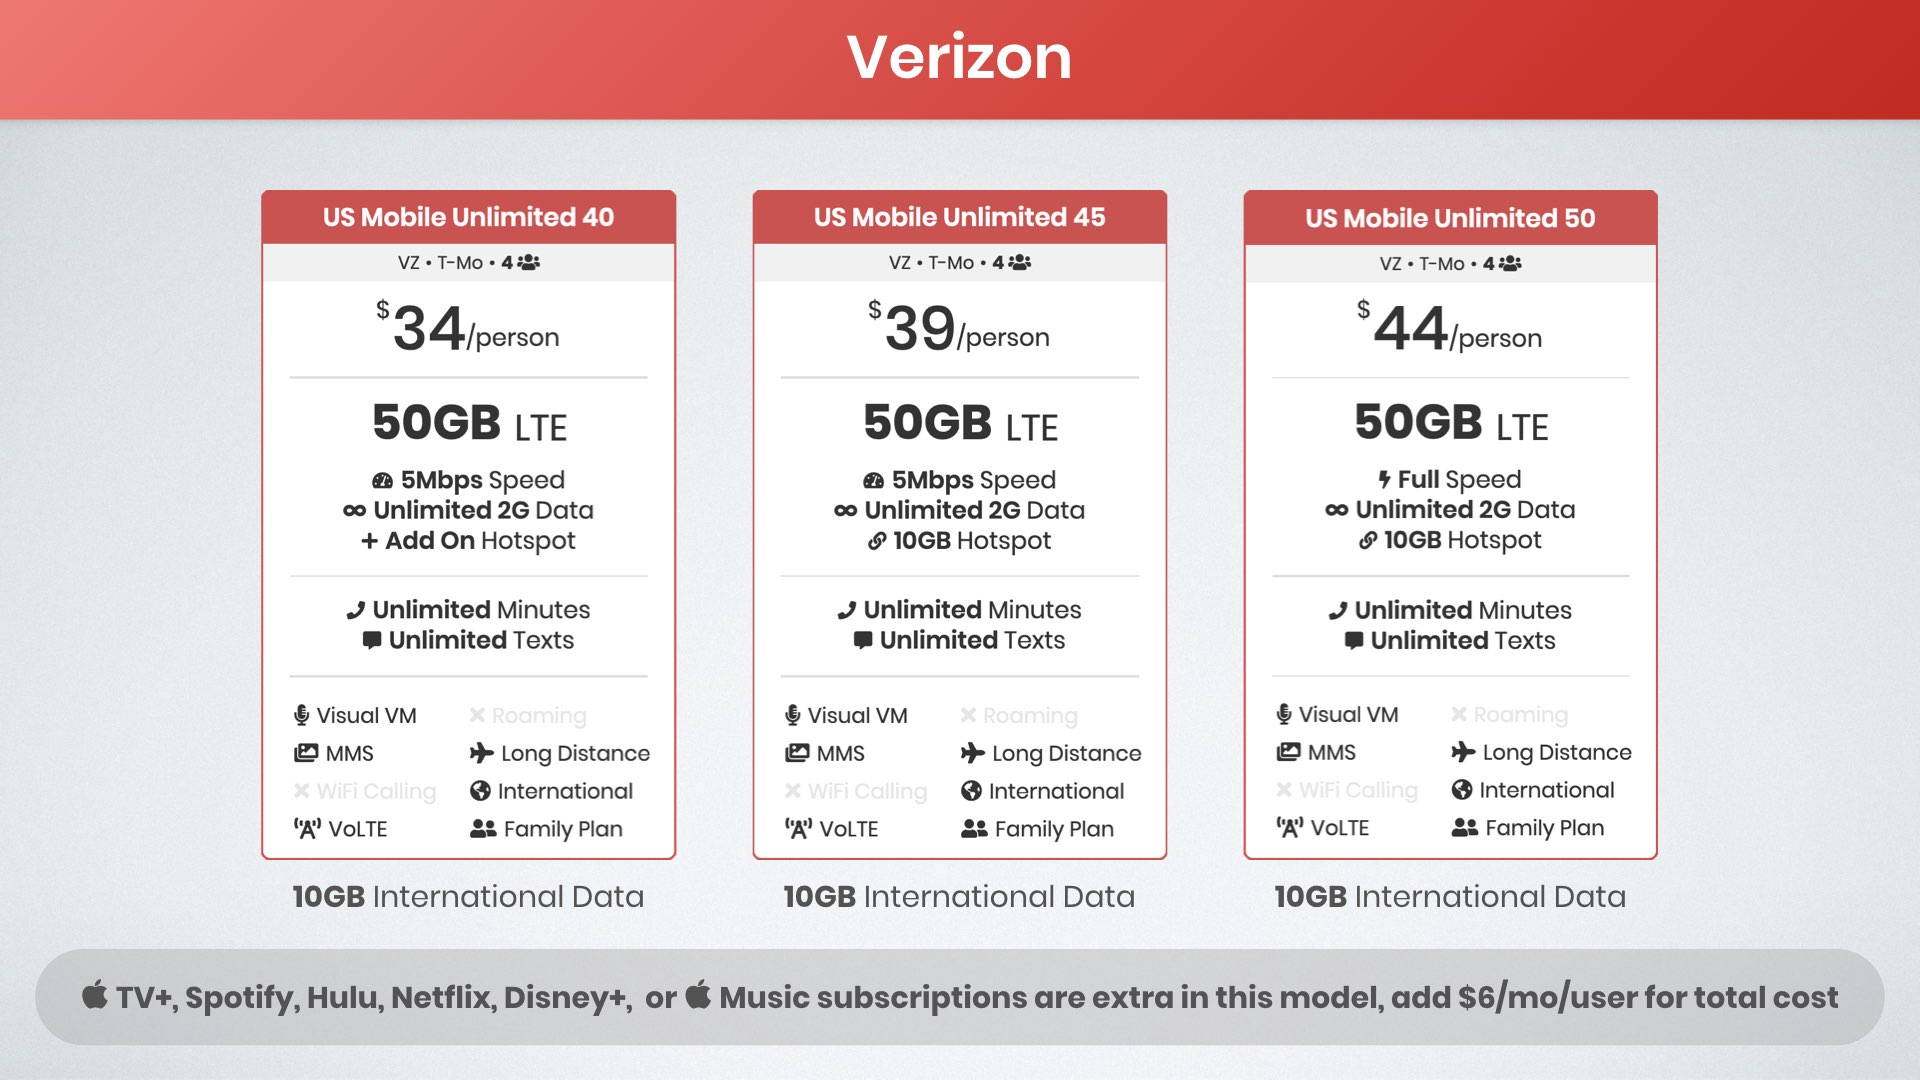 graphic of US Mobile's unlimited data plans with added perks